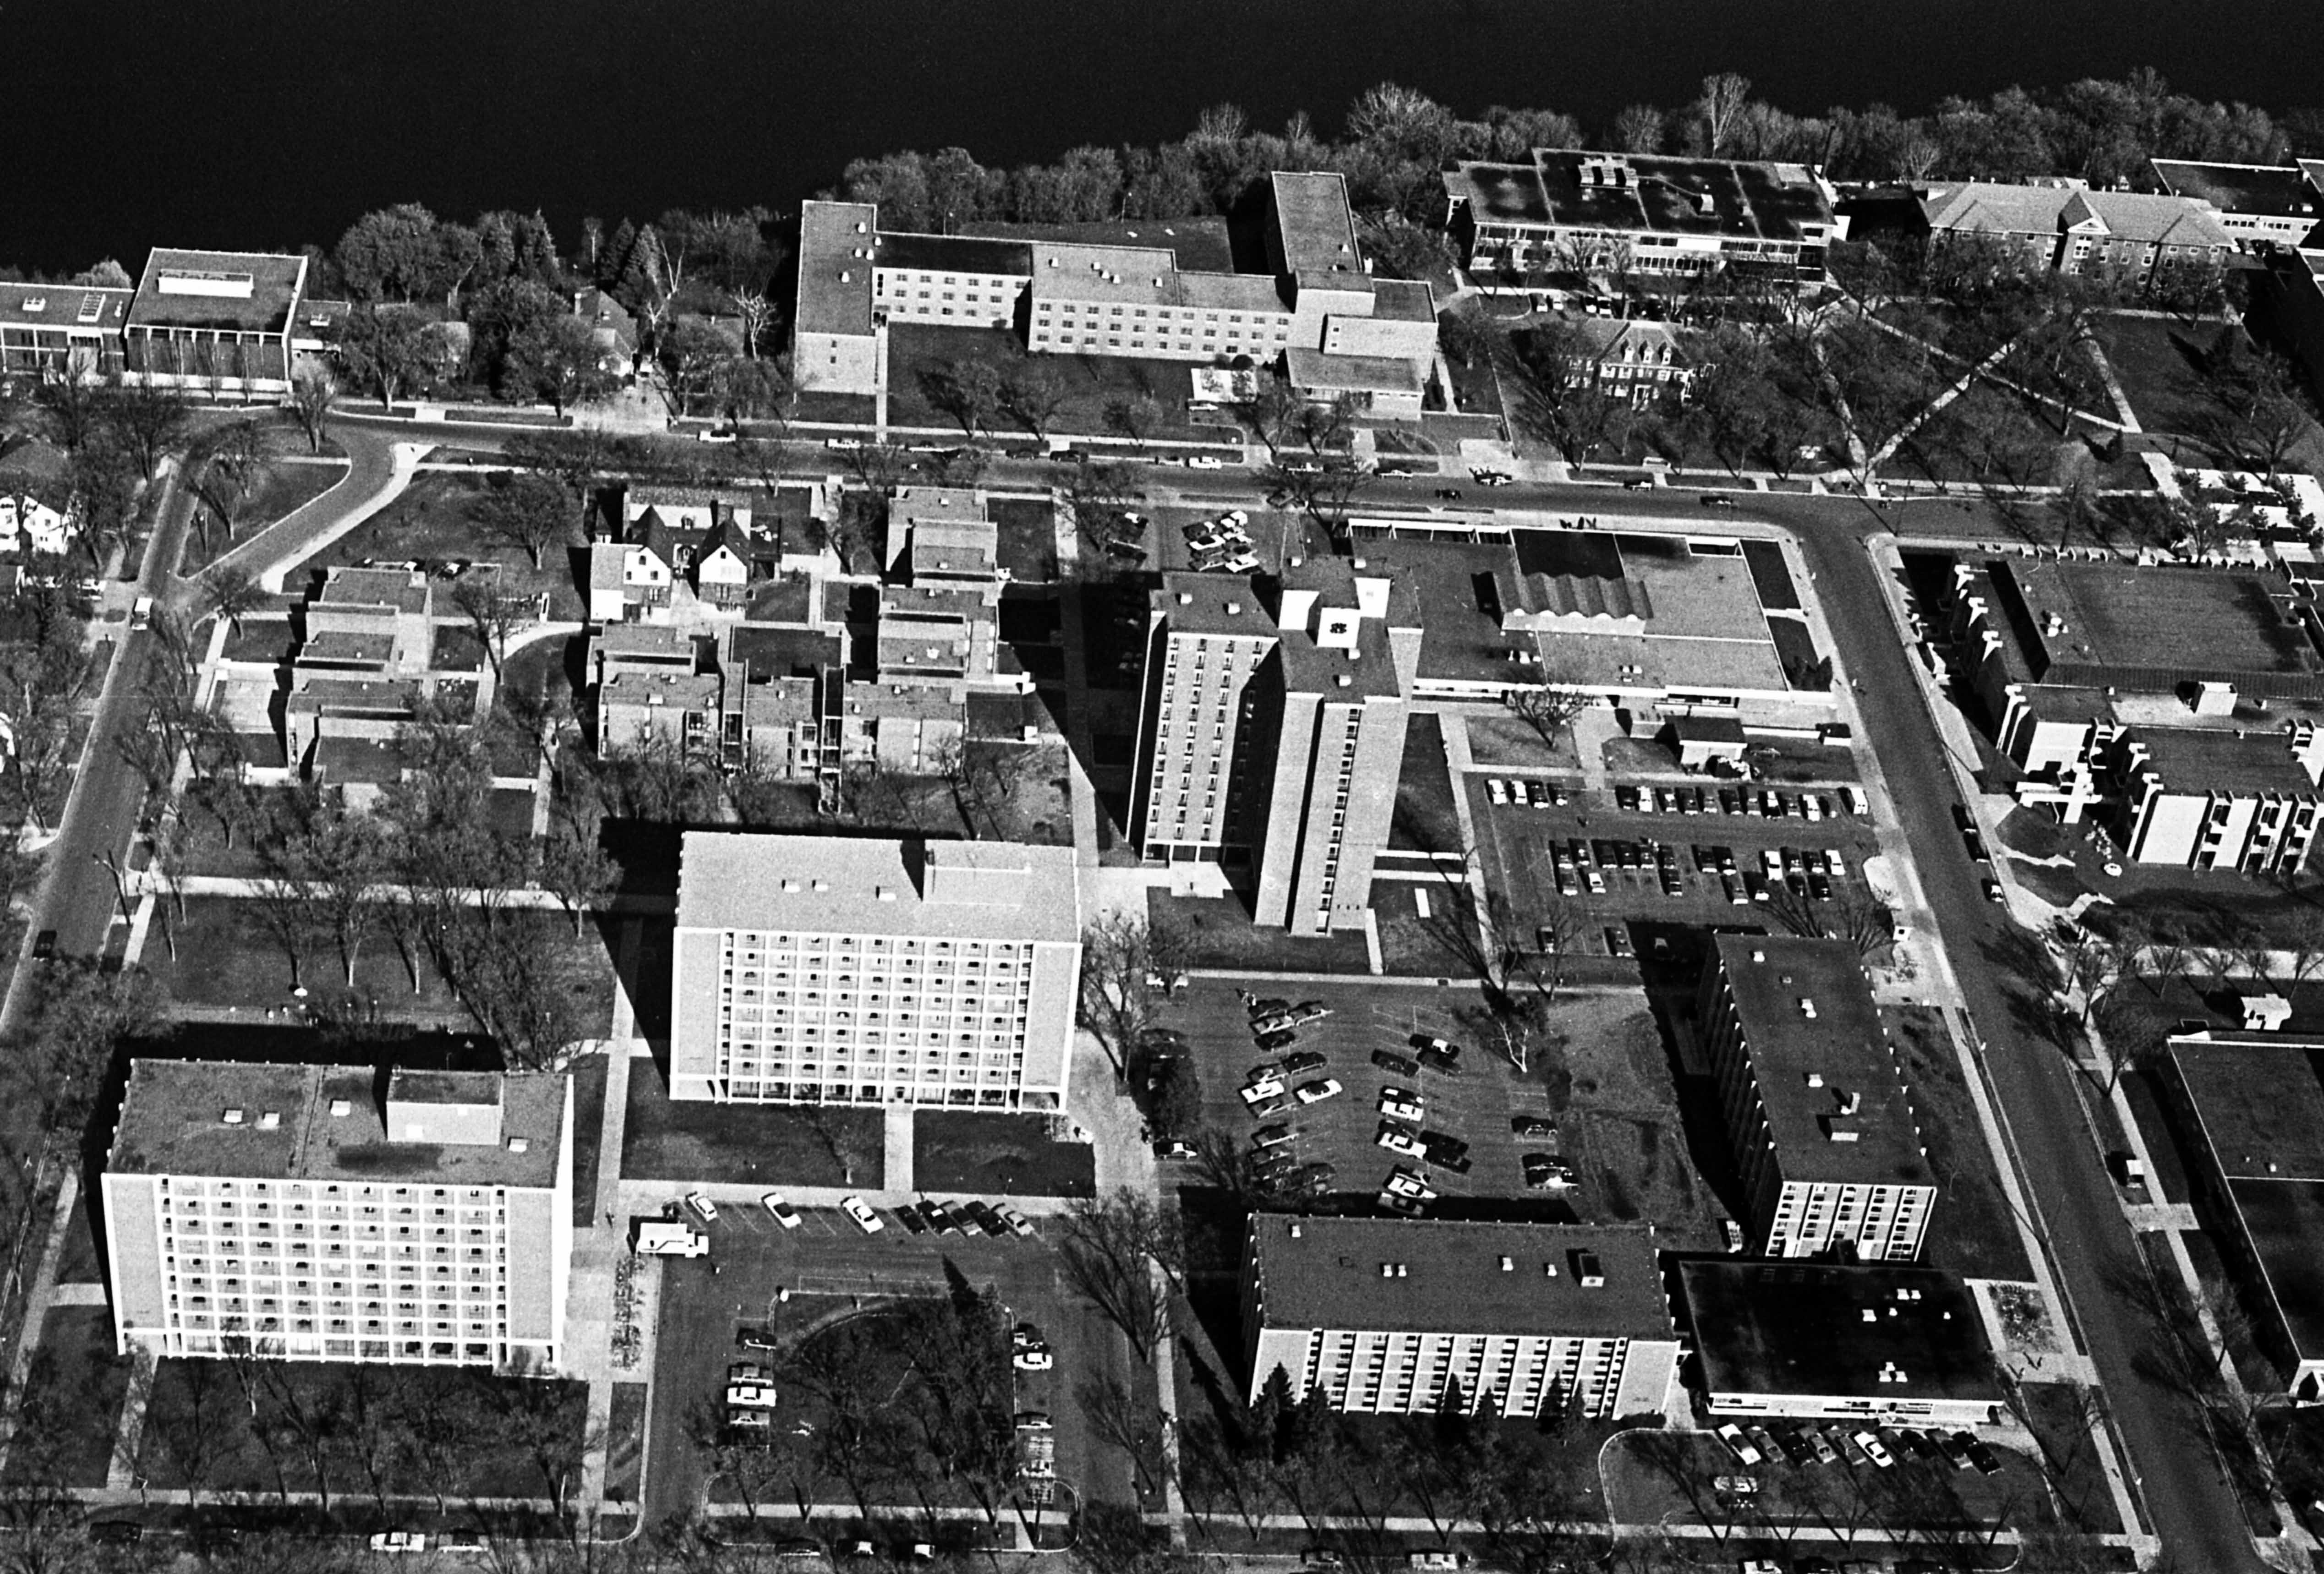 Aerial view of north side dormitory complex, 1977